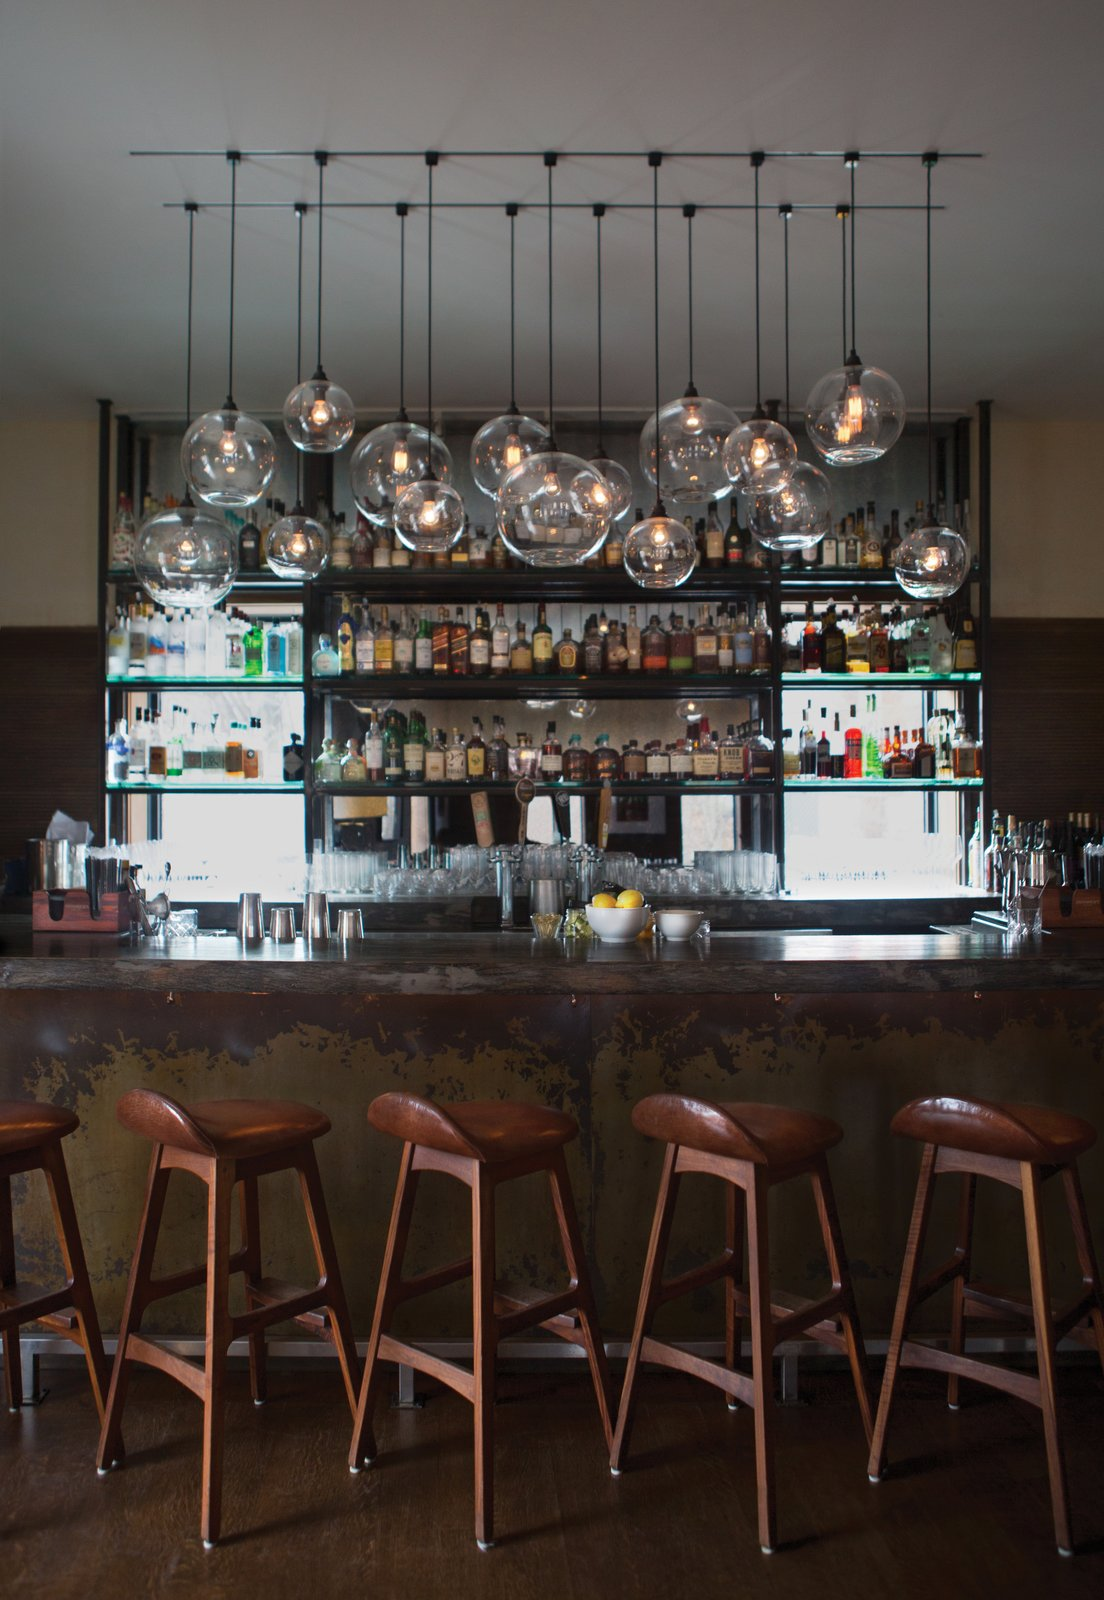 Modern Restaurant Lighting At Adorns Creekside Hotel And Bar Dwell